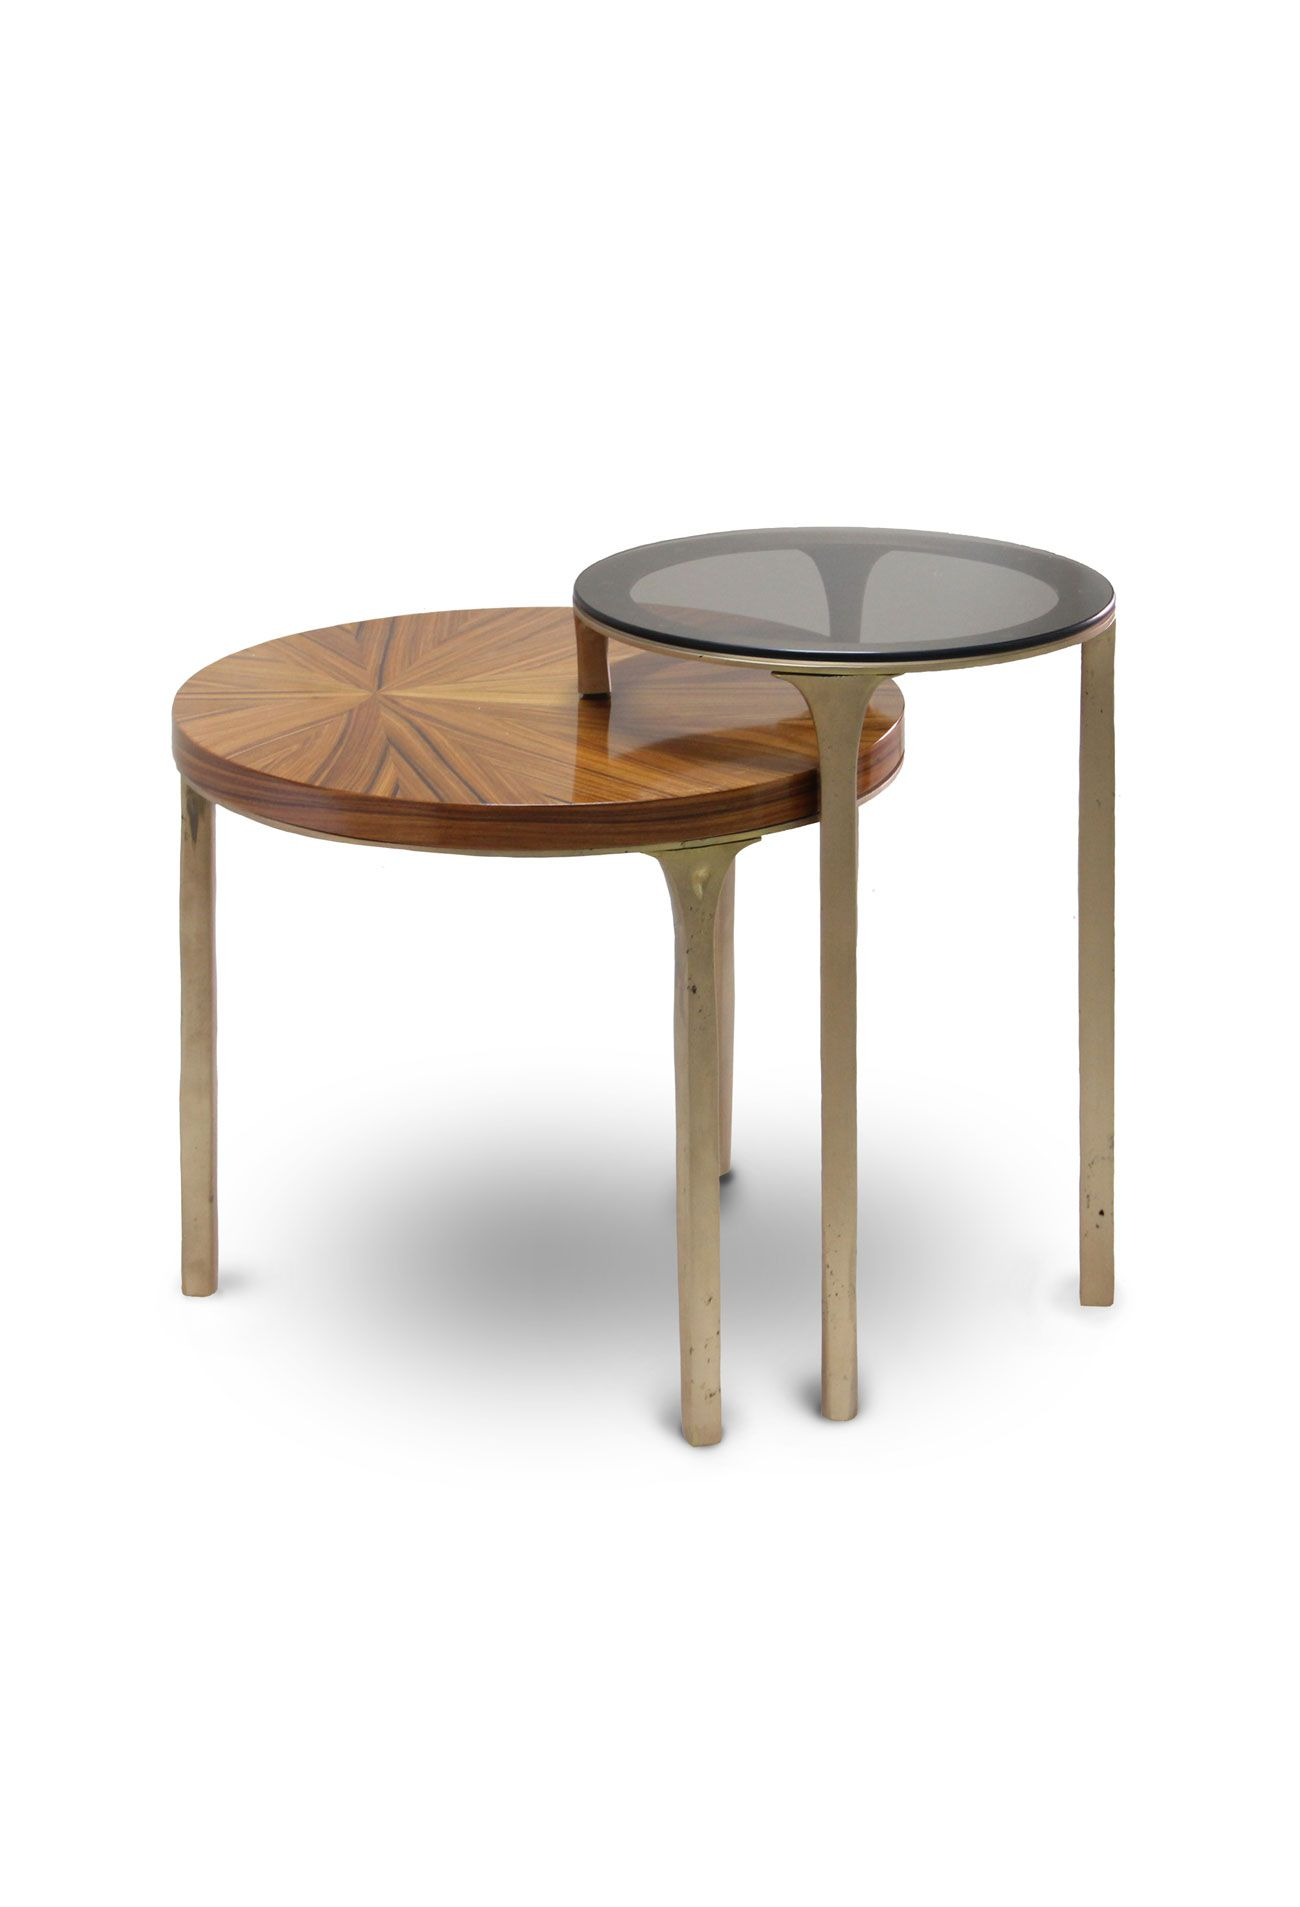 Luray Modern Side Table By Brabbu Coffee Table Side Table Table Furniture [ 1907 x 1300 Pixel ]